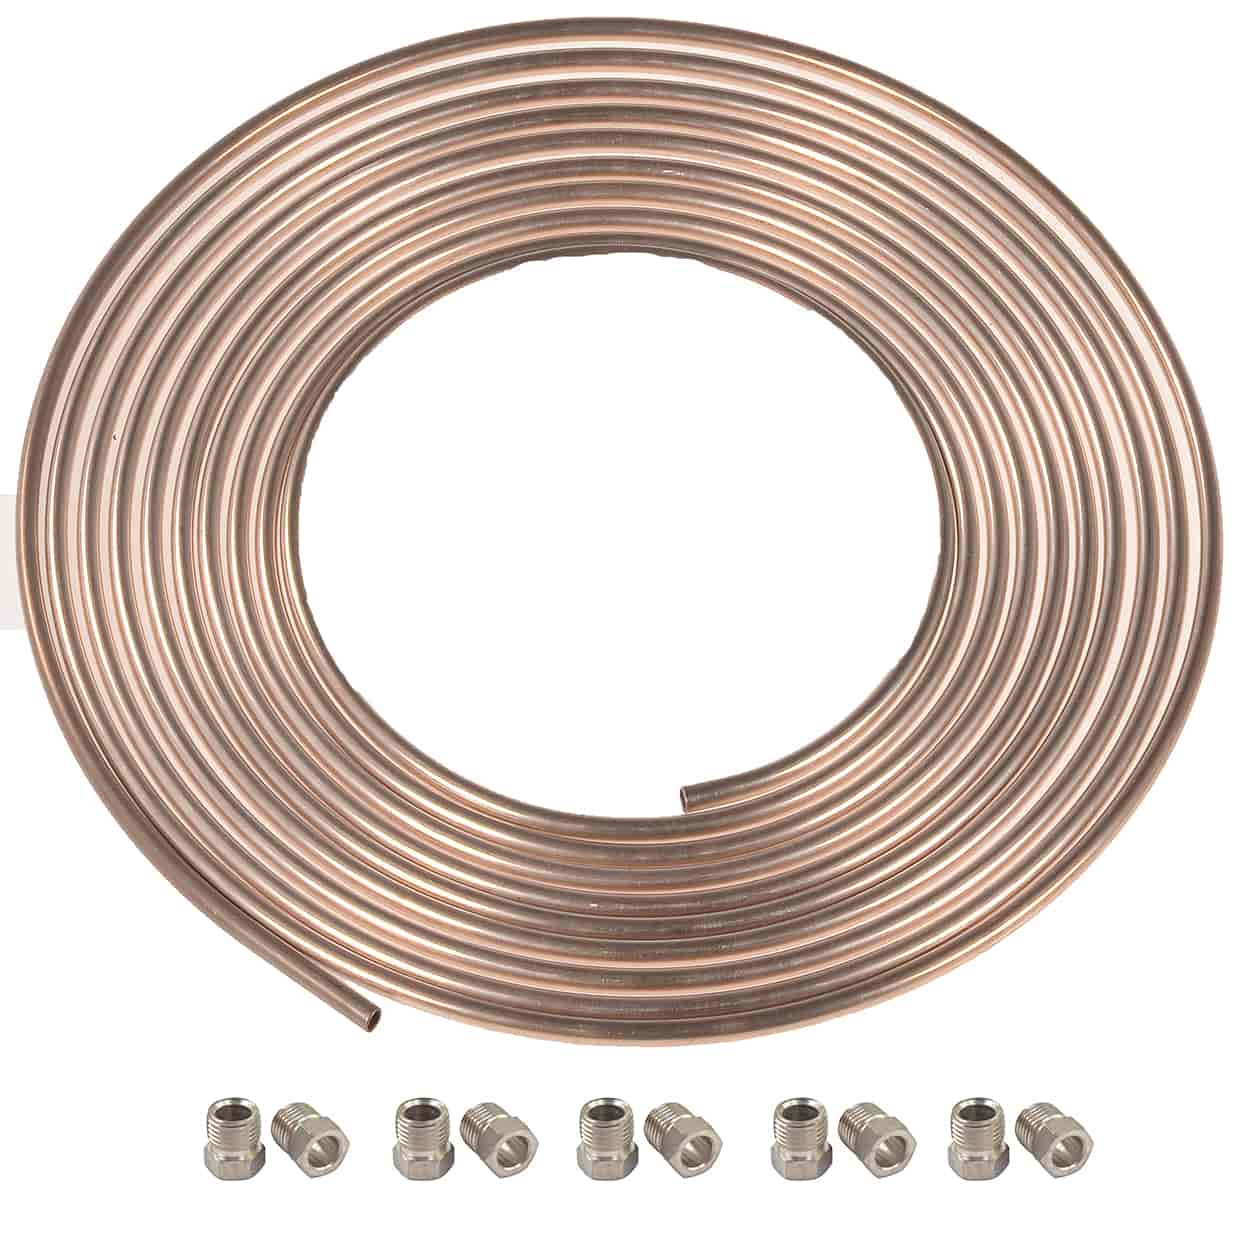 Hose, Lines & Fittings JEGS 635810 NiCopp Tube Nuts Replacement Parts